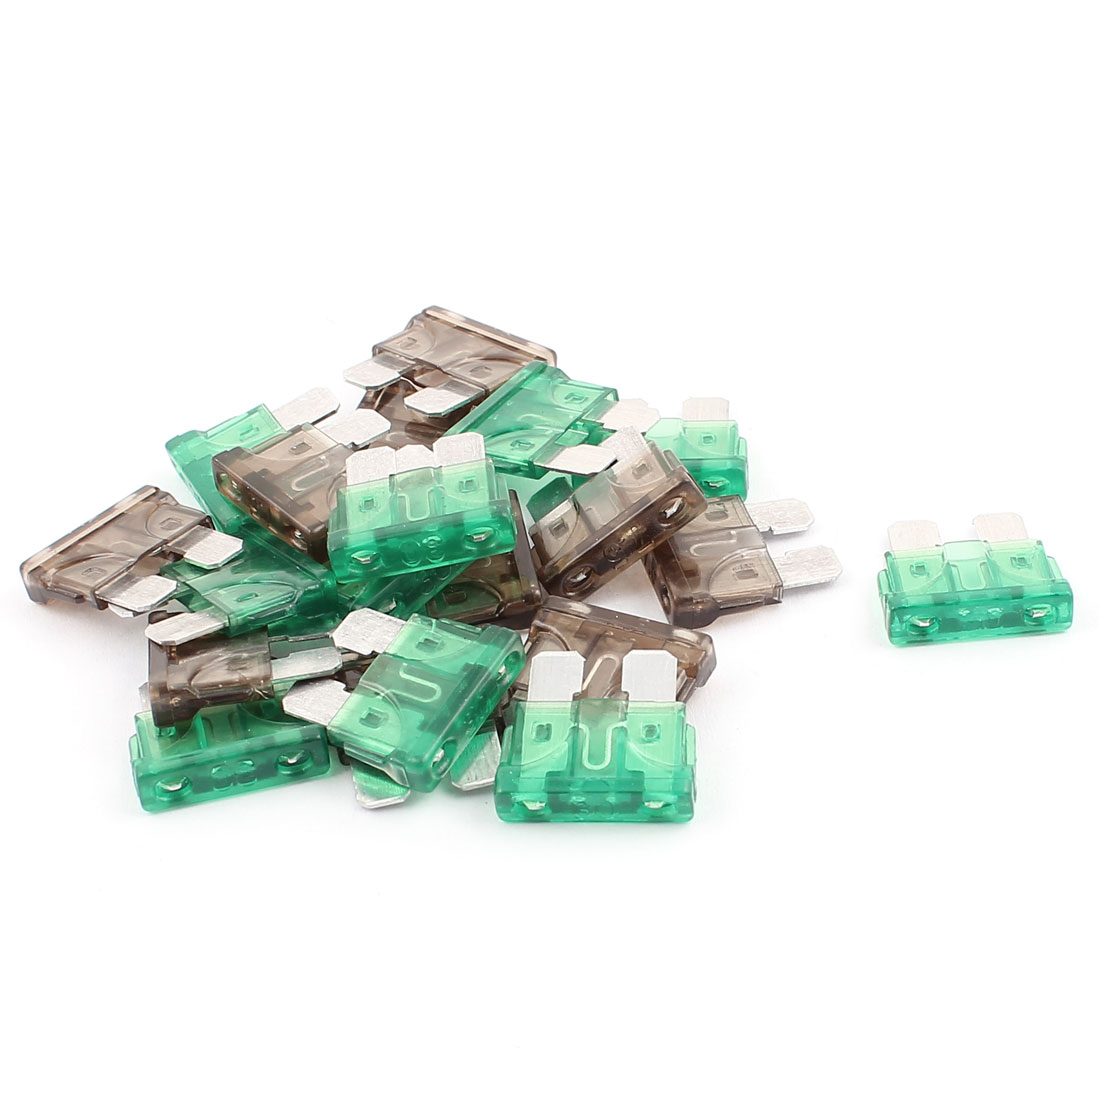 20pcs Green Gray 7.5A 30A Plastic Shell Mini Blade Fuse for Auto Car Caravan Motorcycle SUV